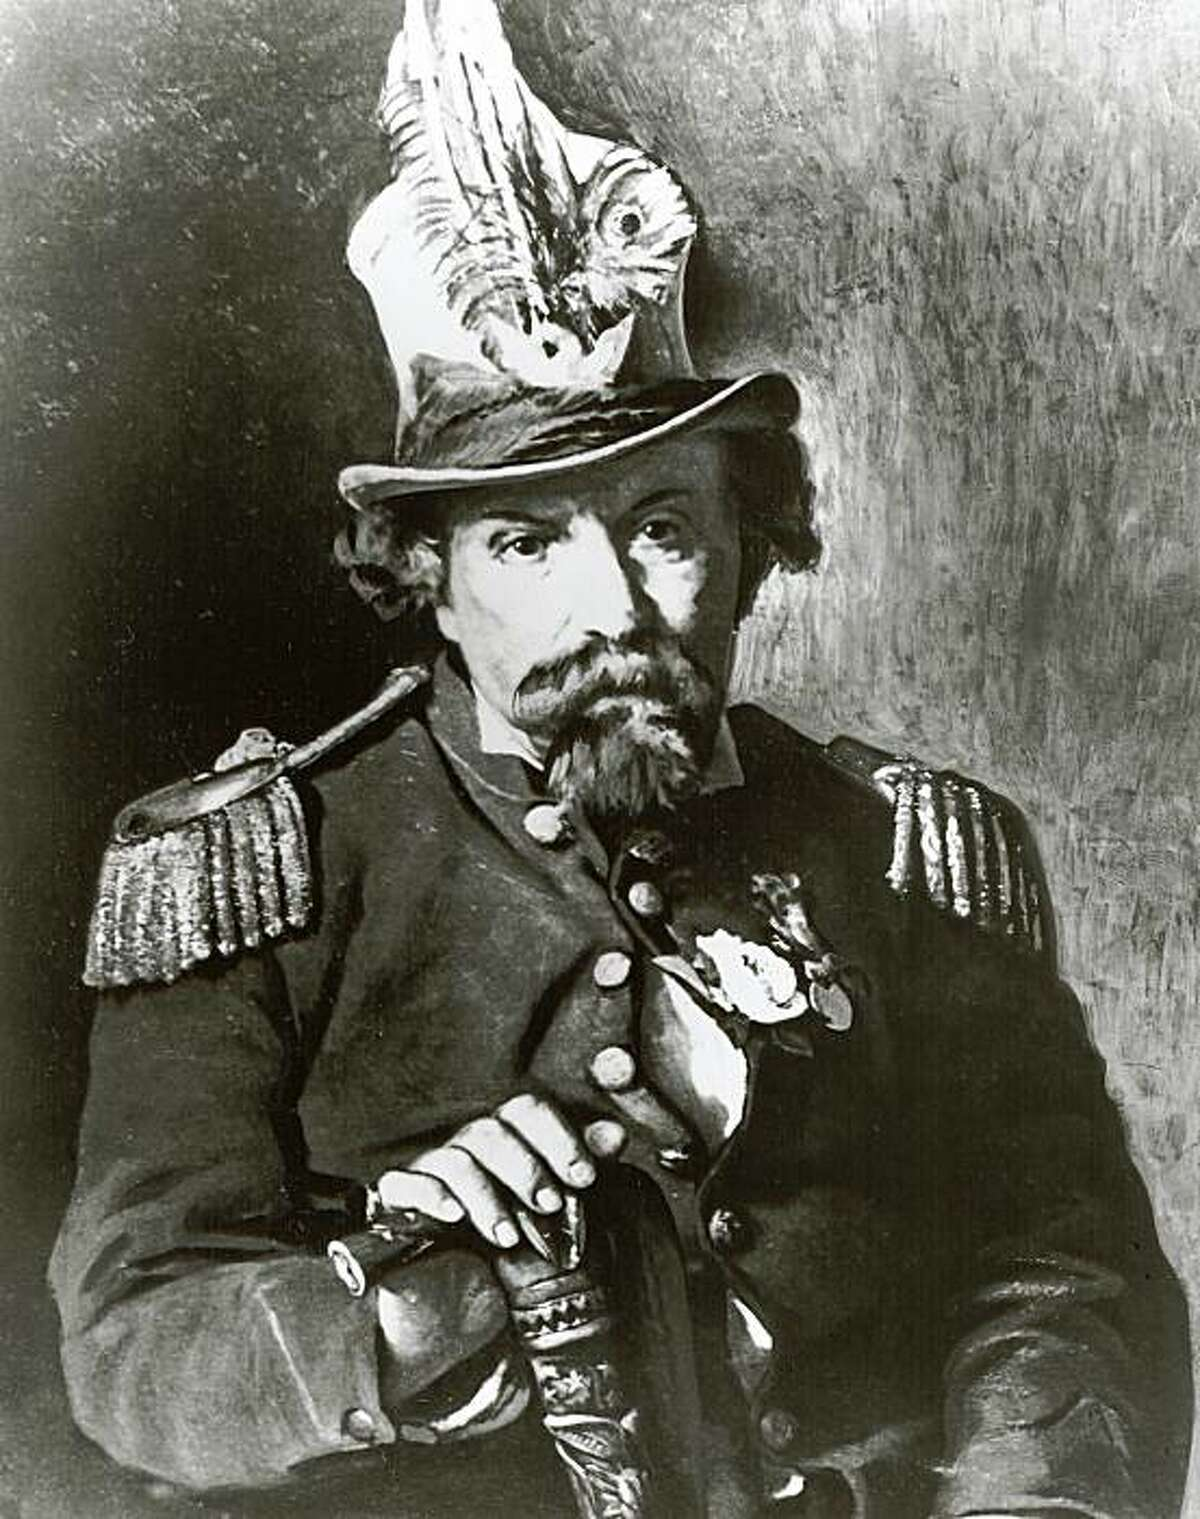 norton_2.JPG June 29, 1959- Emperor Norton- Emperor of the United States and Protector of Mexico. /staff photographer